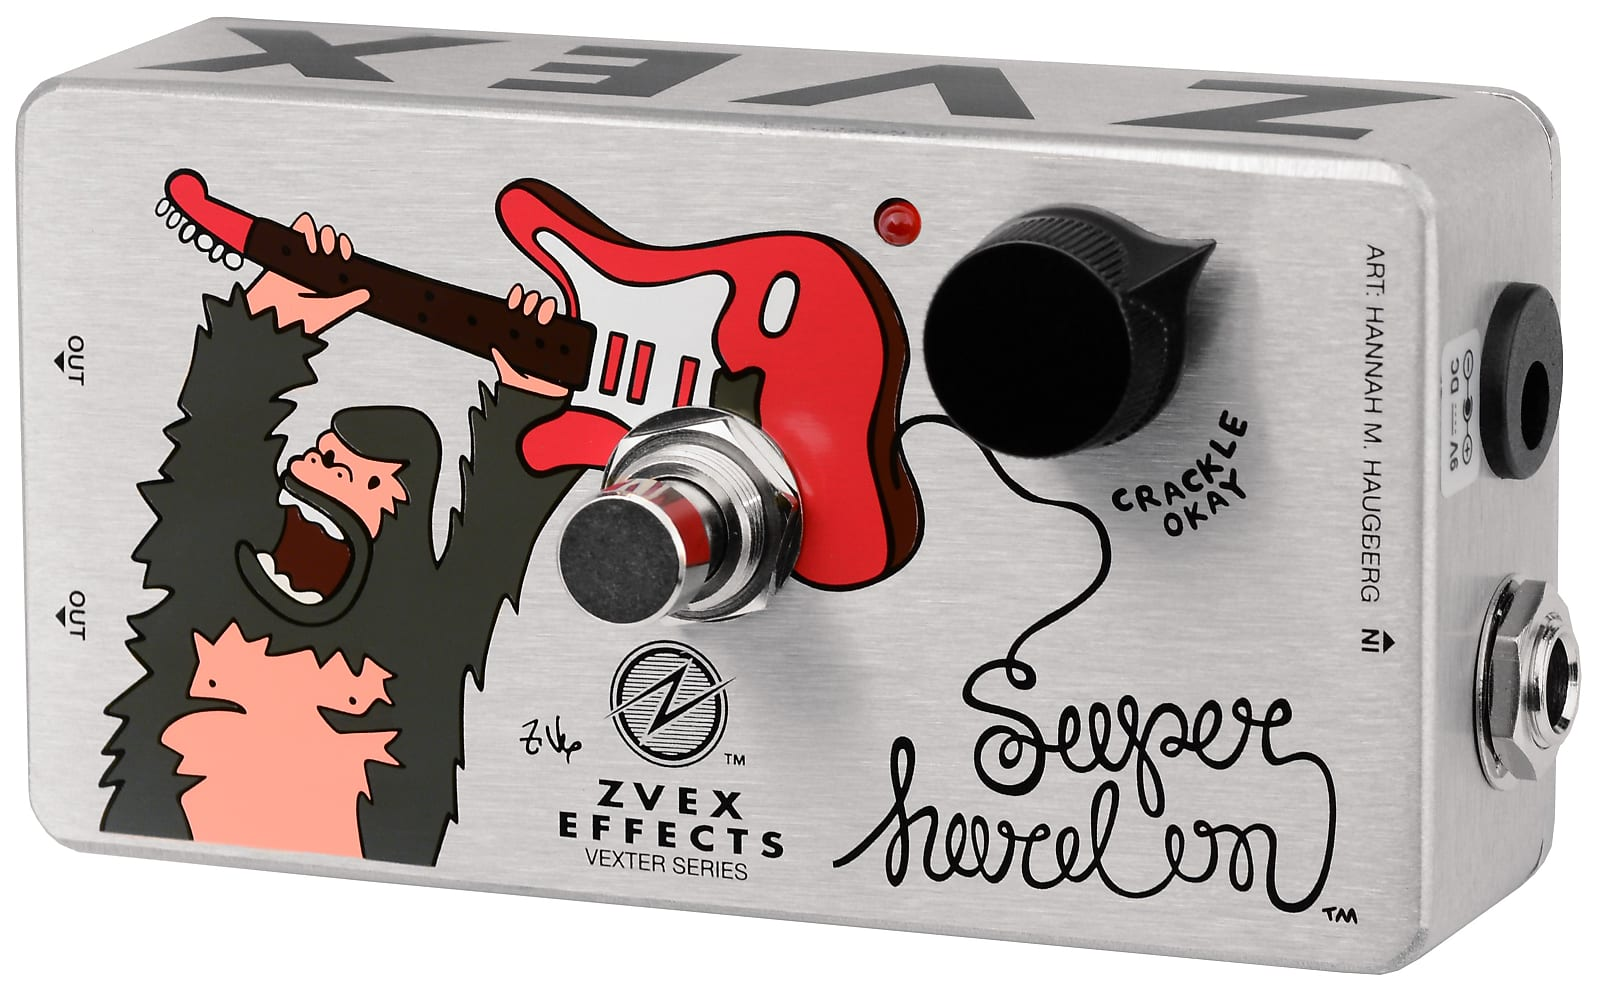 ZVEX Super Hard On Vexter Series Boost Effects Pedal